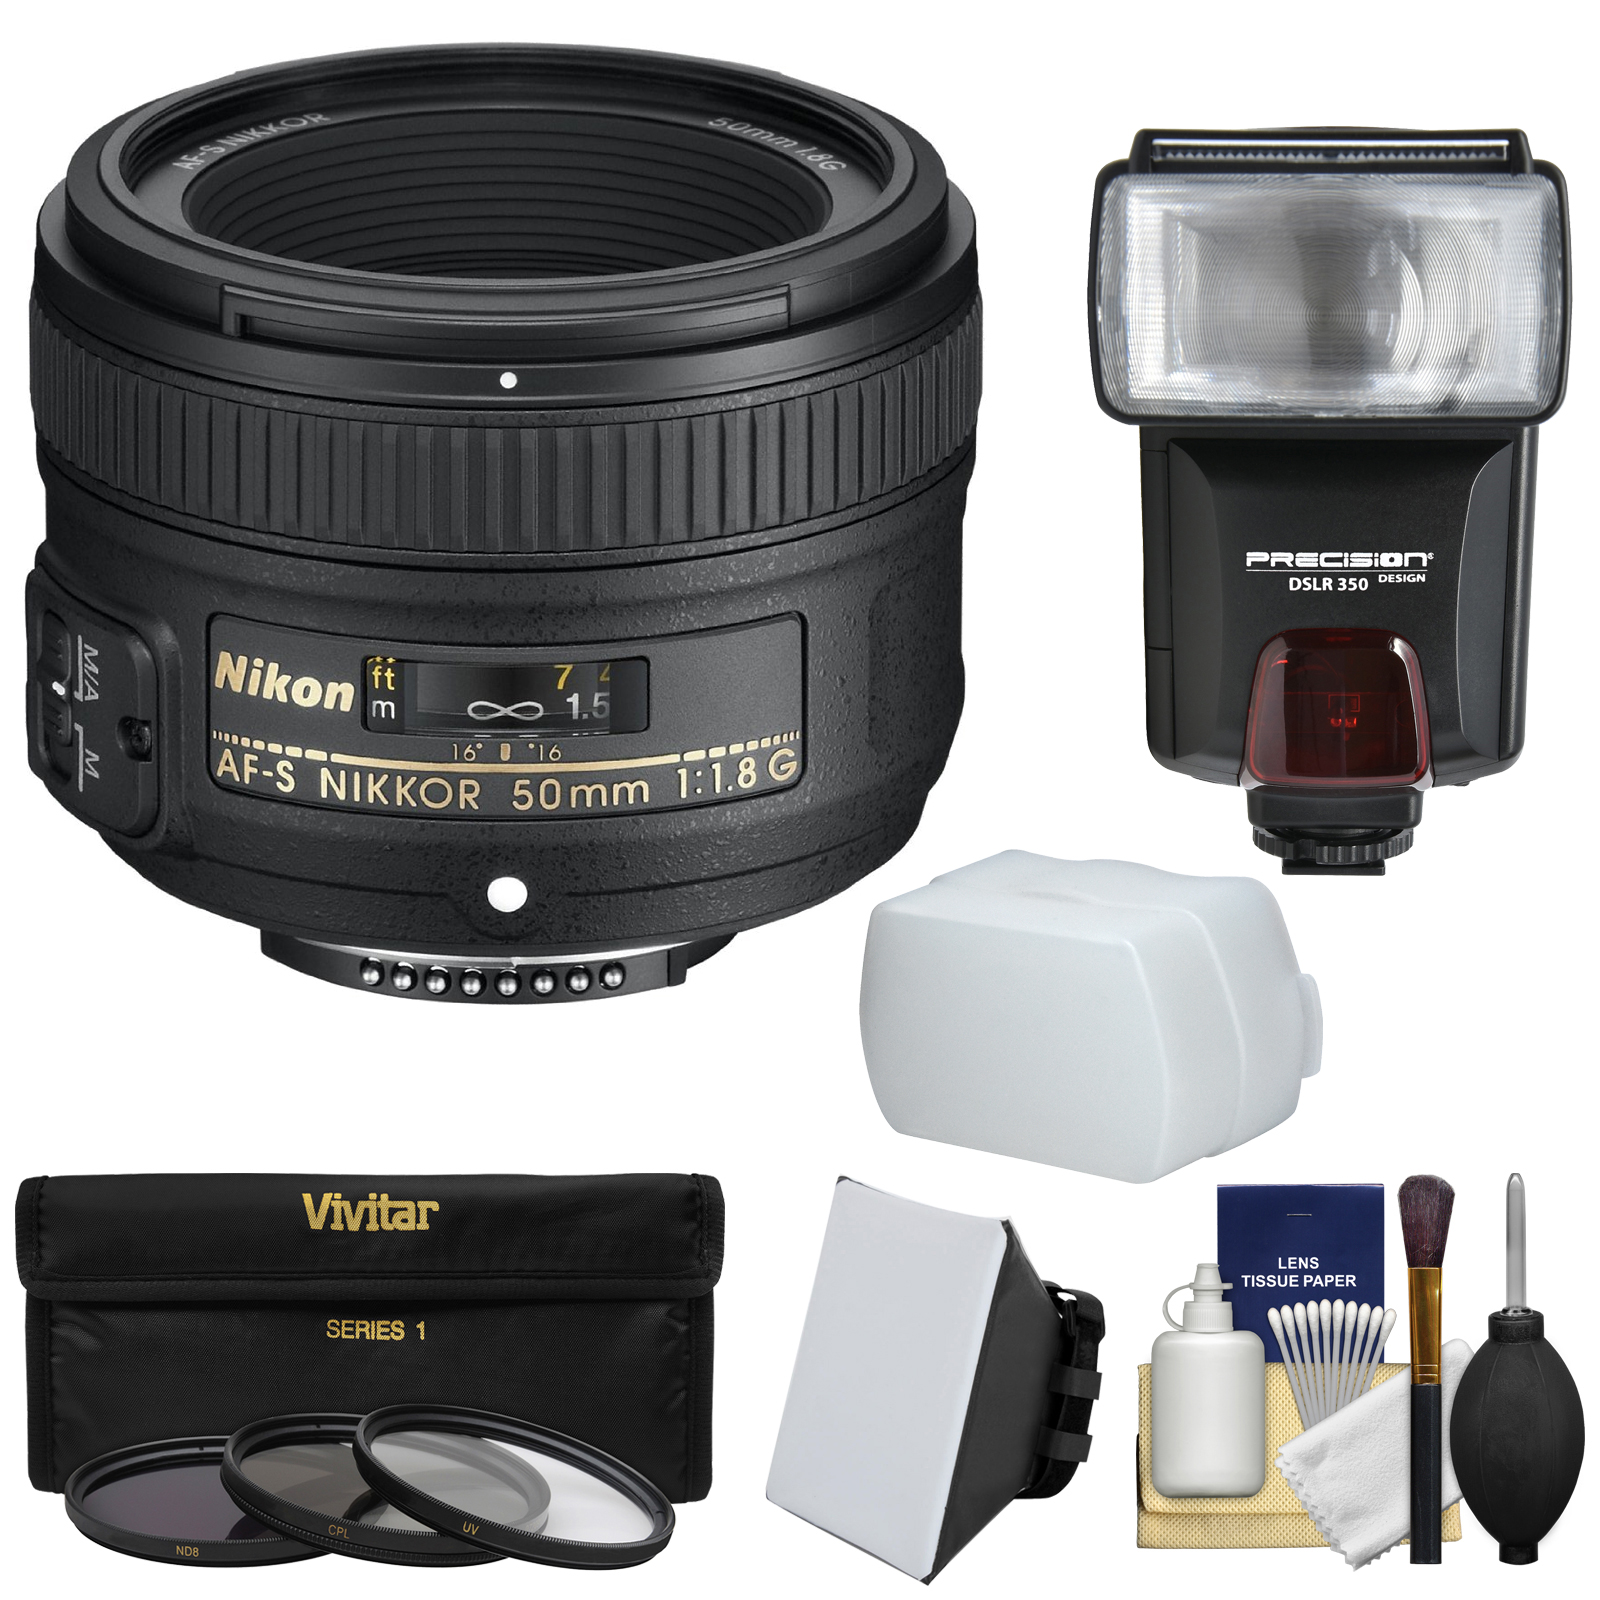 Nikon 50mm f/1.8G AF-S Nikkor Lens with 3 Filters + Flash & 2 Diffusers + Kit for D3200, D3300, D5300, D5500, D7100, D7200, D750, D810 Cameras